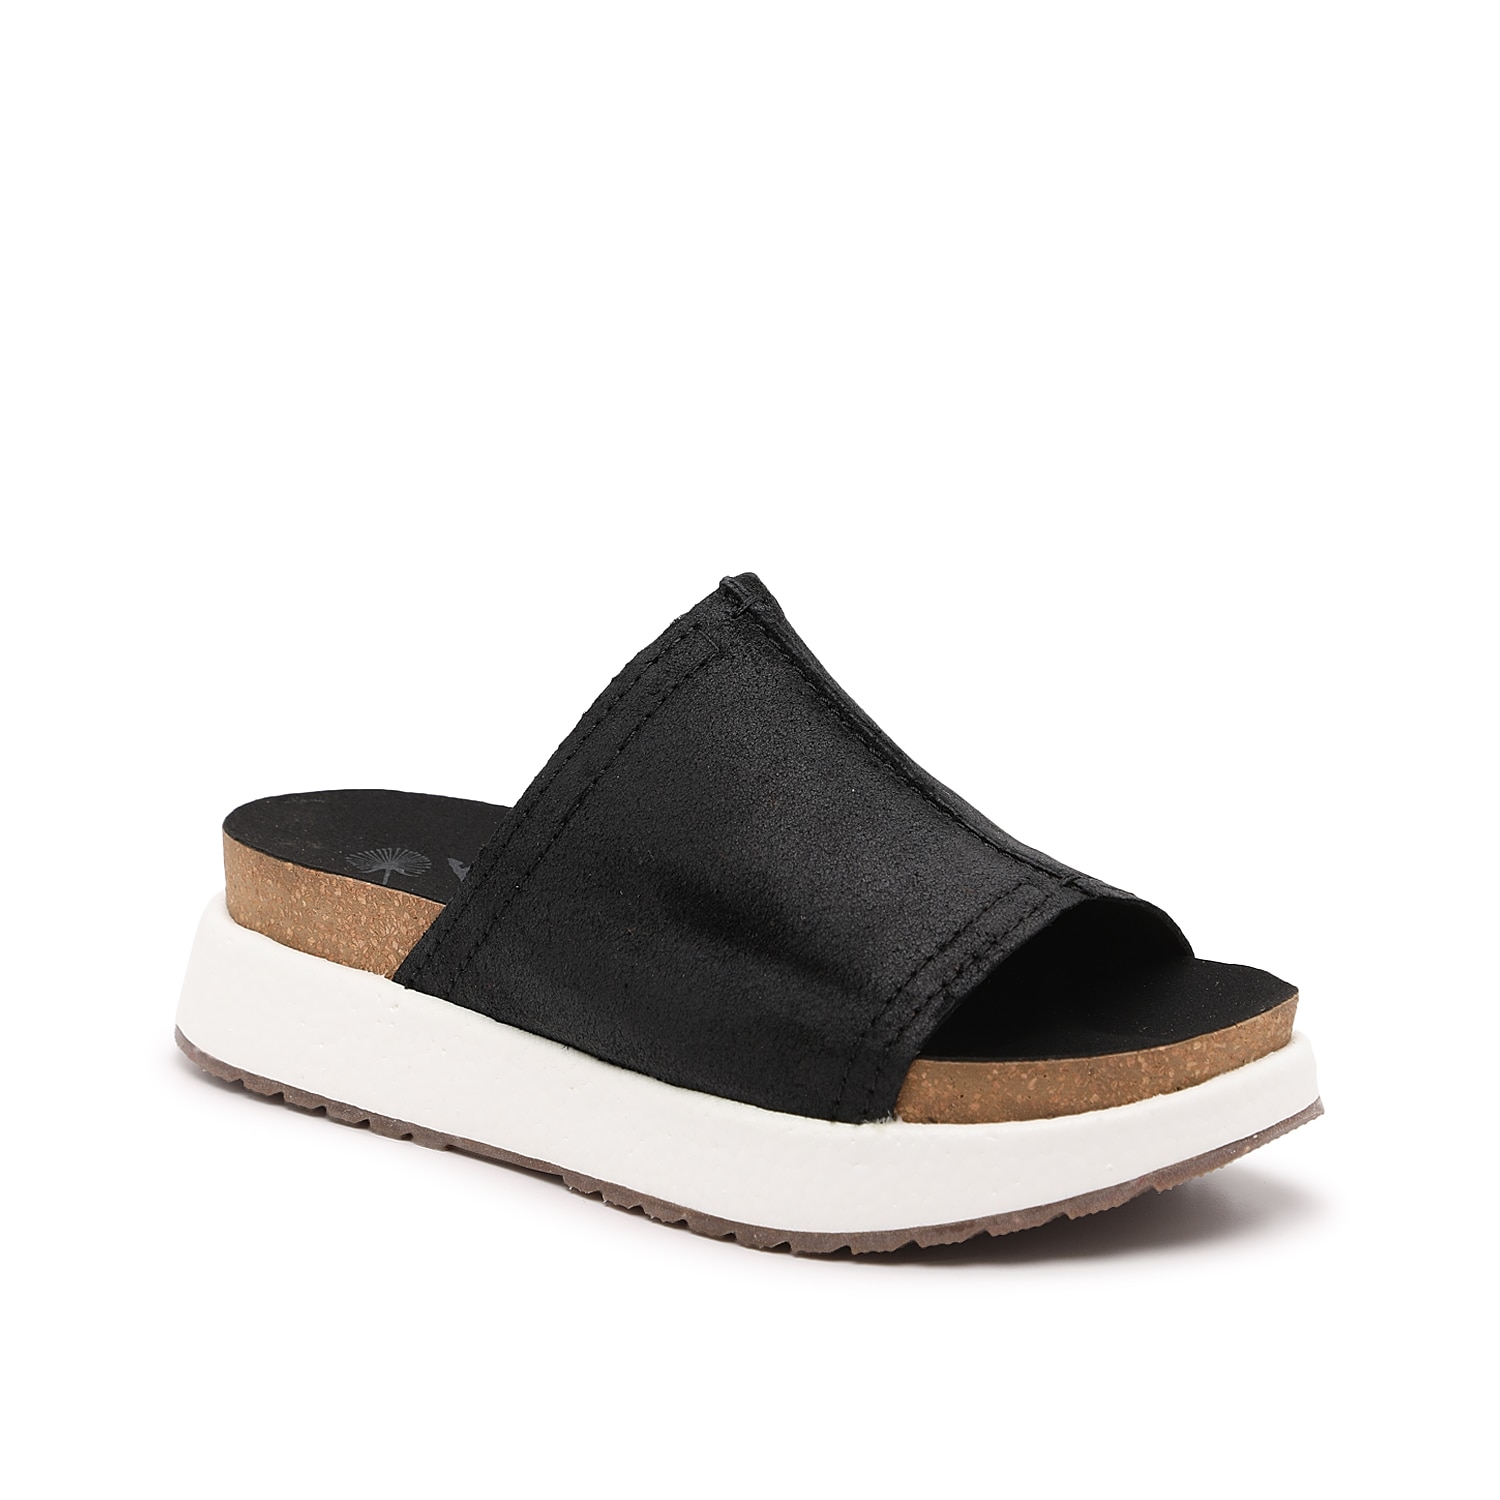 Slip on easygoing comfort with the Wayside slides from Otbt. The Step Lite cushioned footbed feels soft underfoot and the split foam midsole provides springy energy return. A single banded upper makes the fit a breeze.